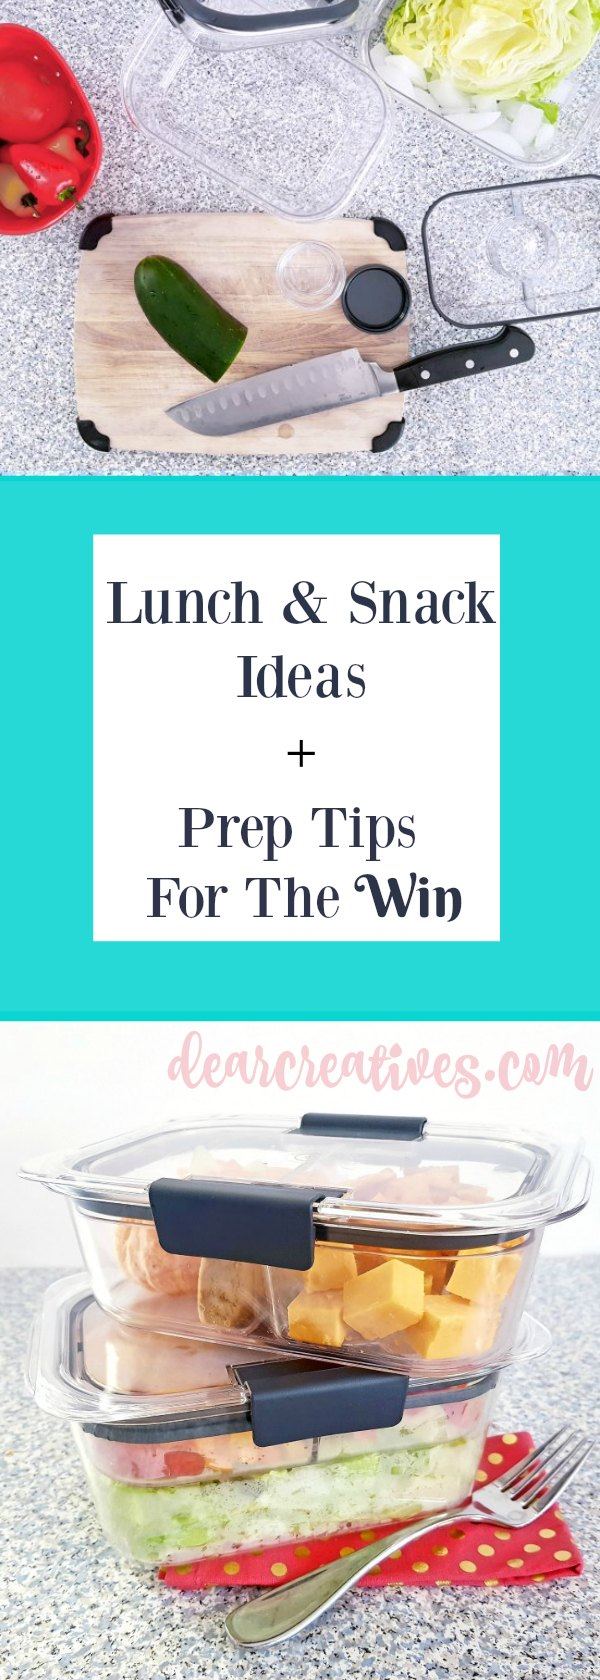 Ready For On The Go Lunch And Snack Time Day After Day? Prep Tips For The Win